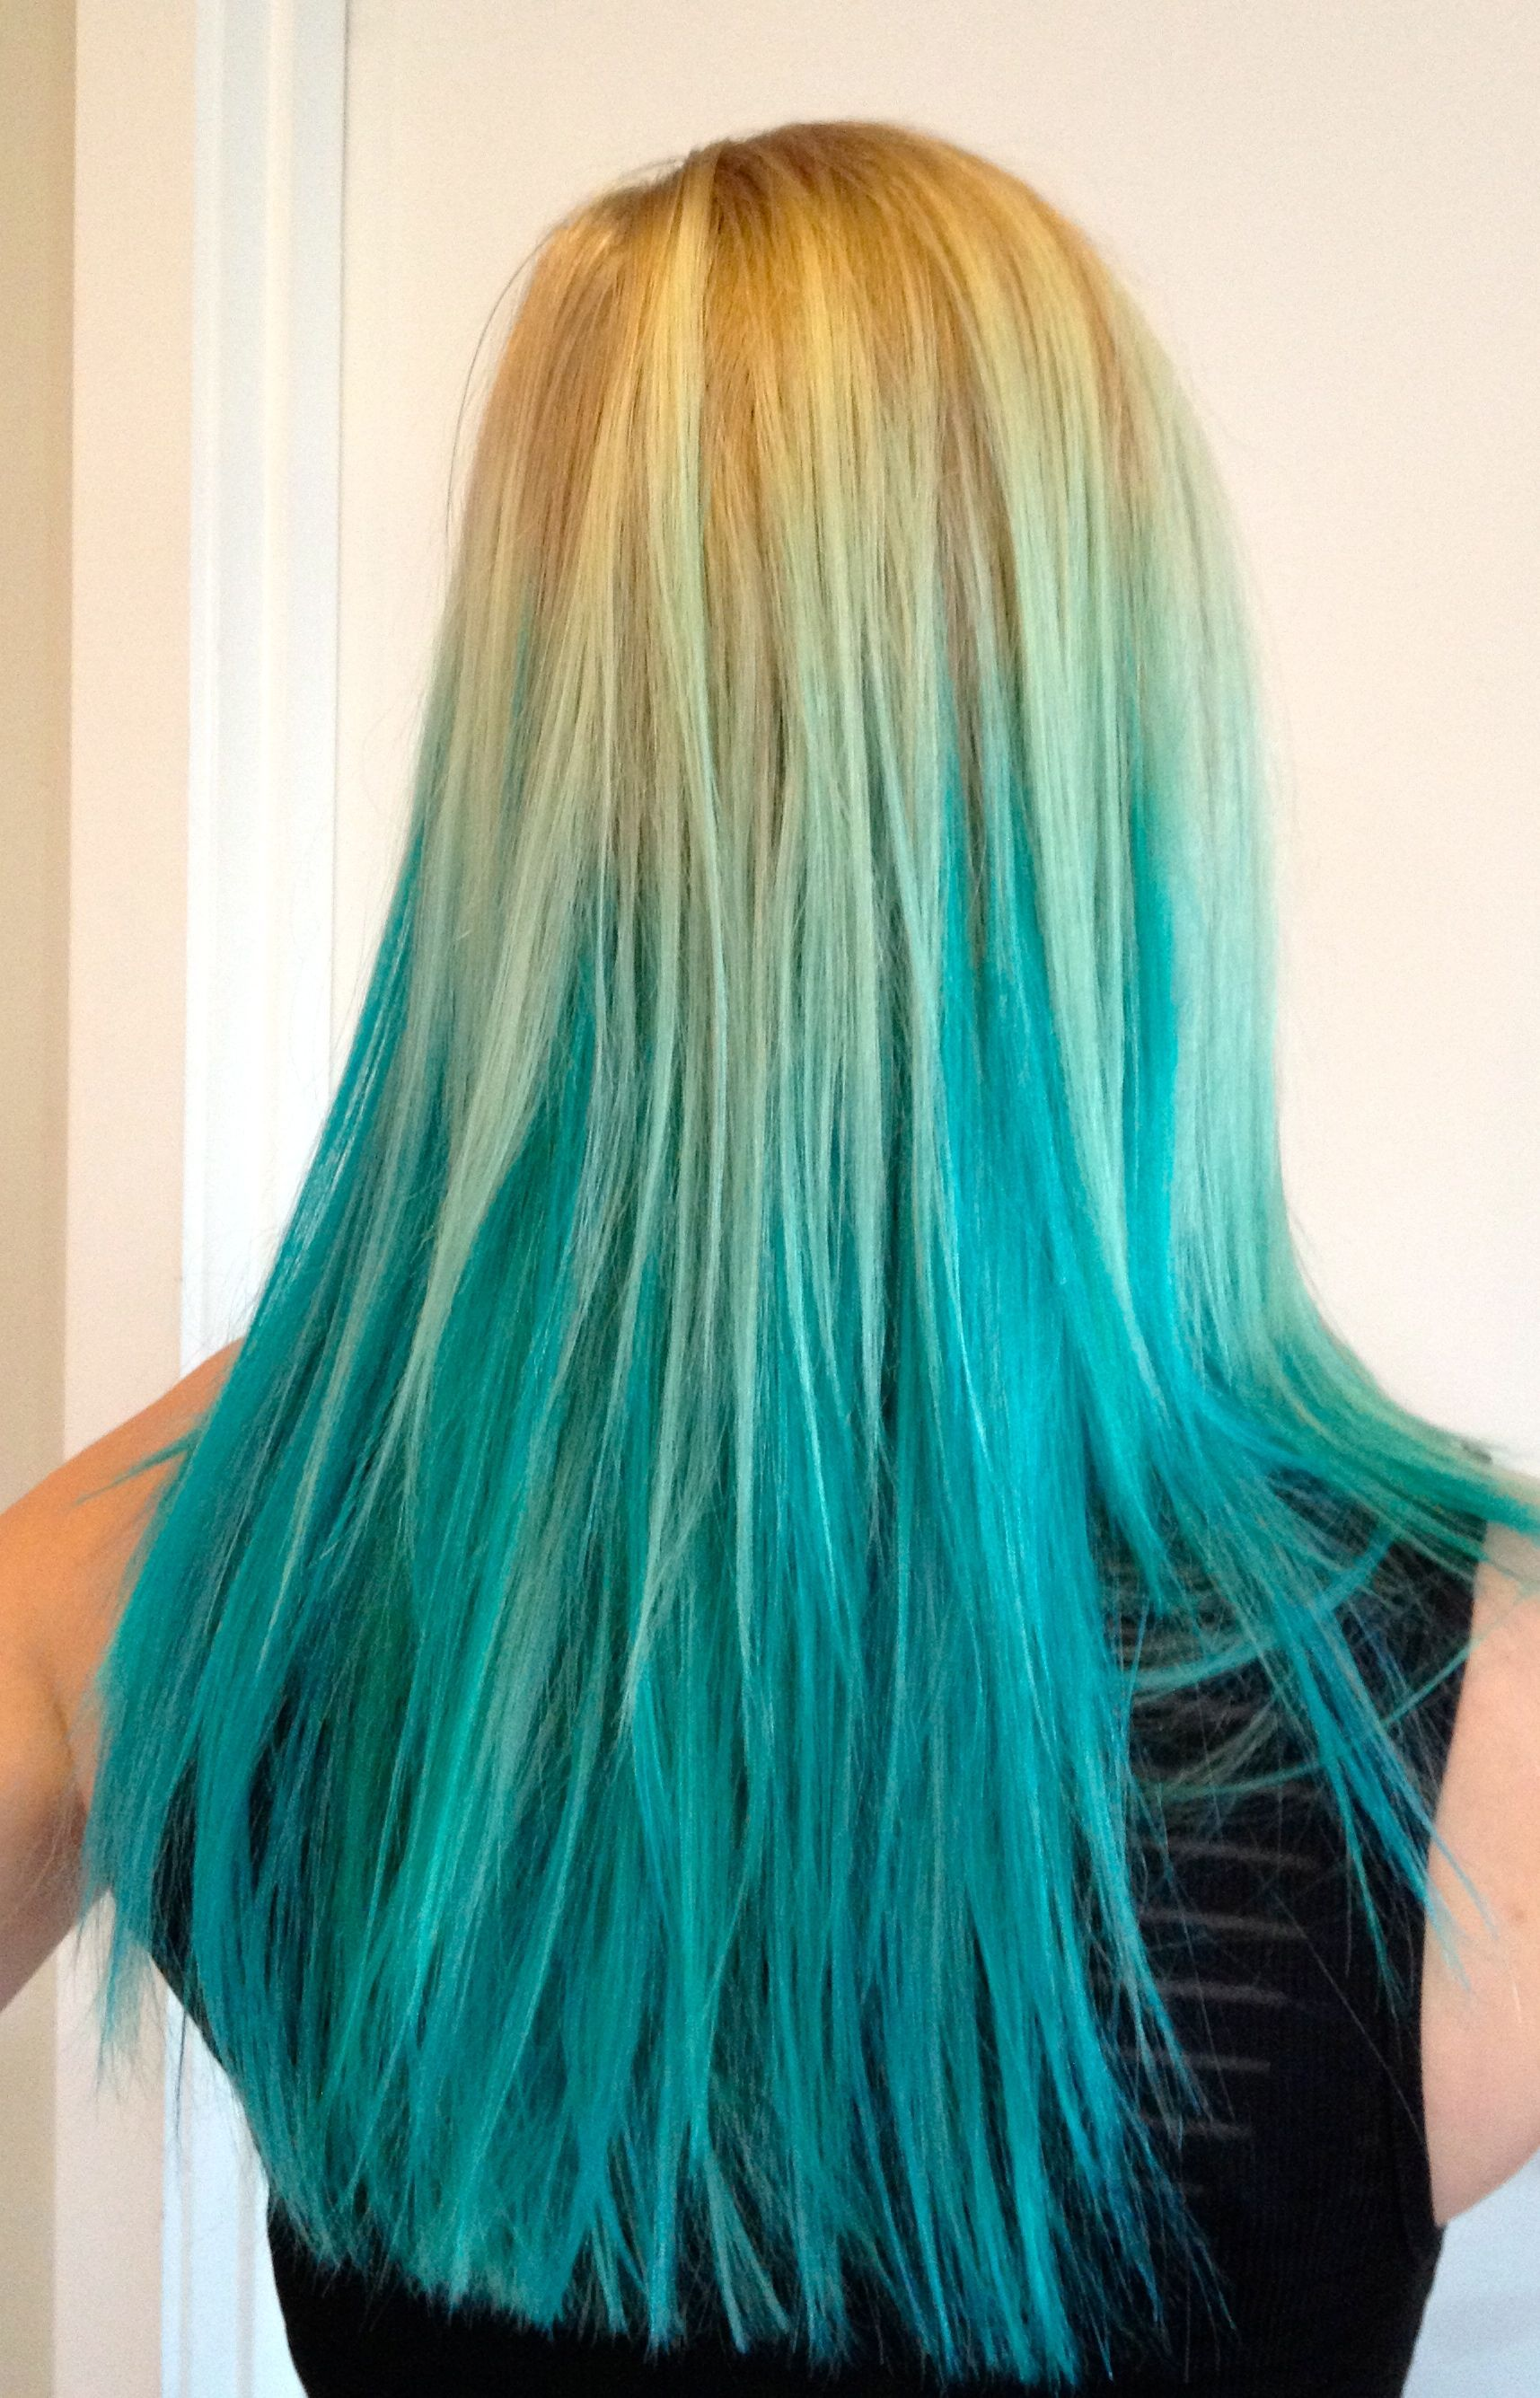 photos blonde hair with blue dip dye for iphone hd pics if there was a bit more and less bluethink this